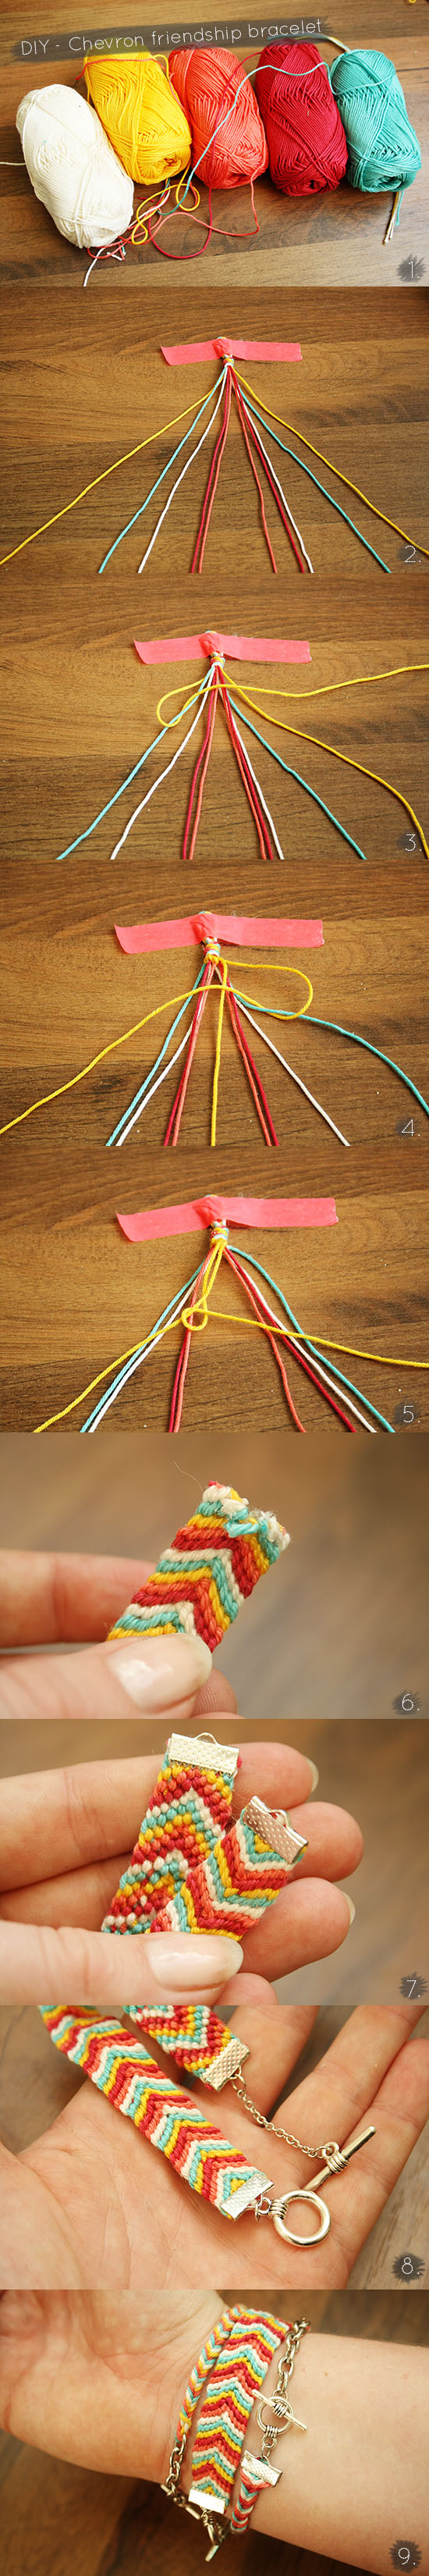 DIY - Chevron friendship bracelet tutorial